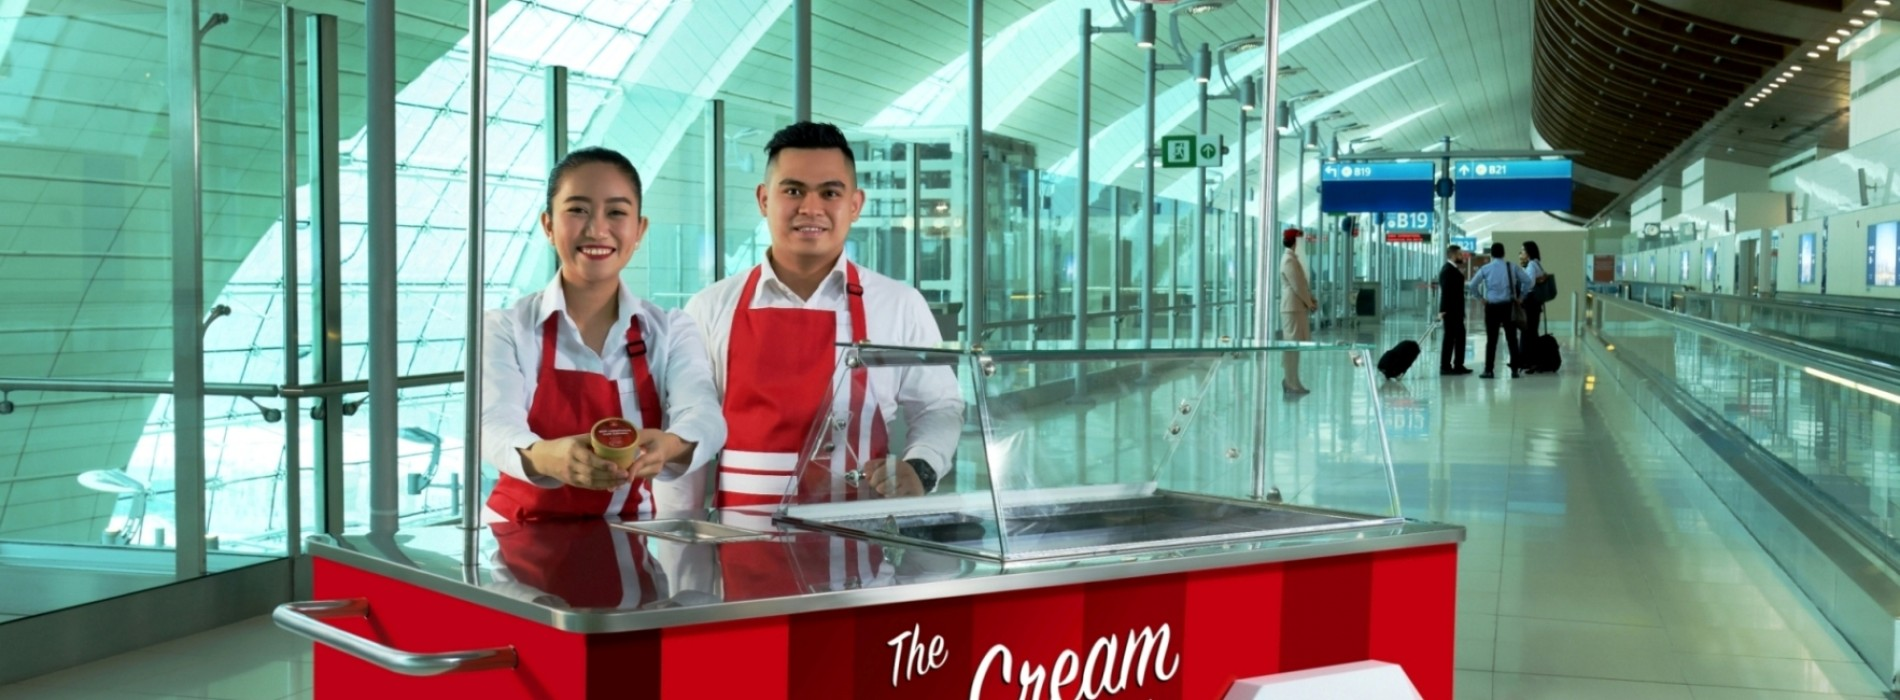 Summer just got cooler with Emirates' complimentary ice cream service